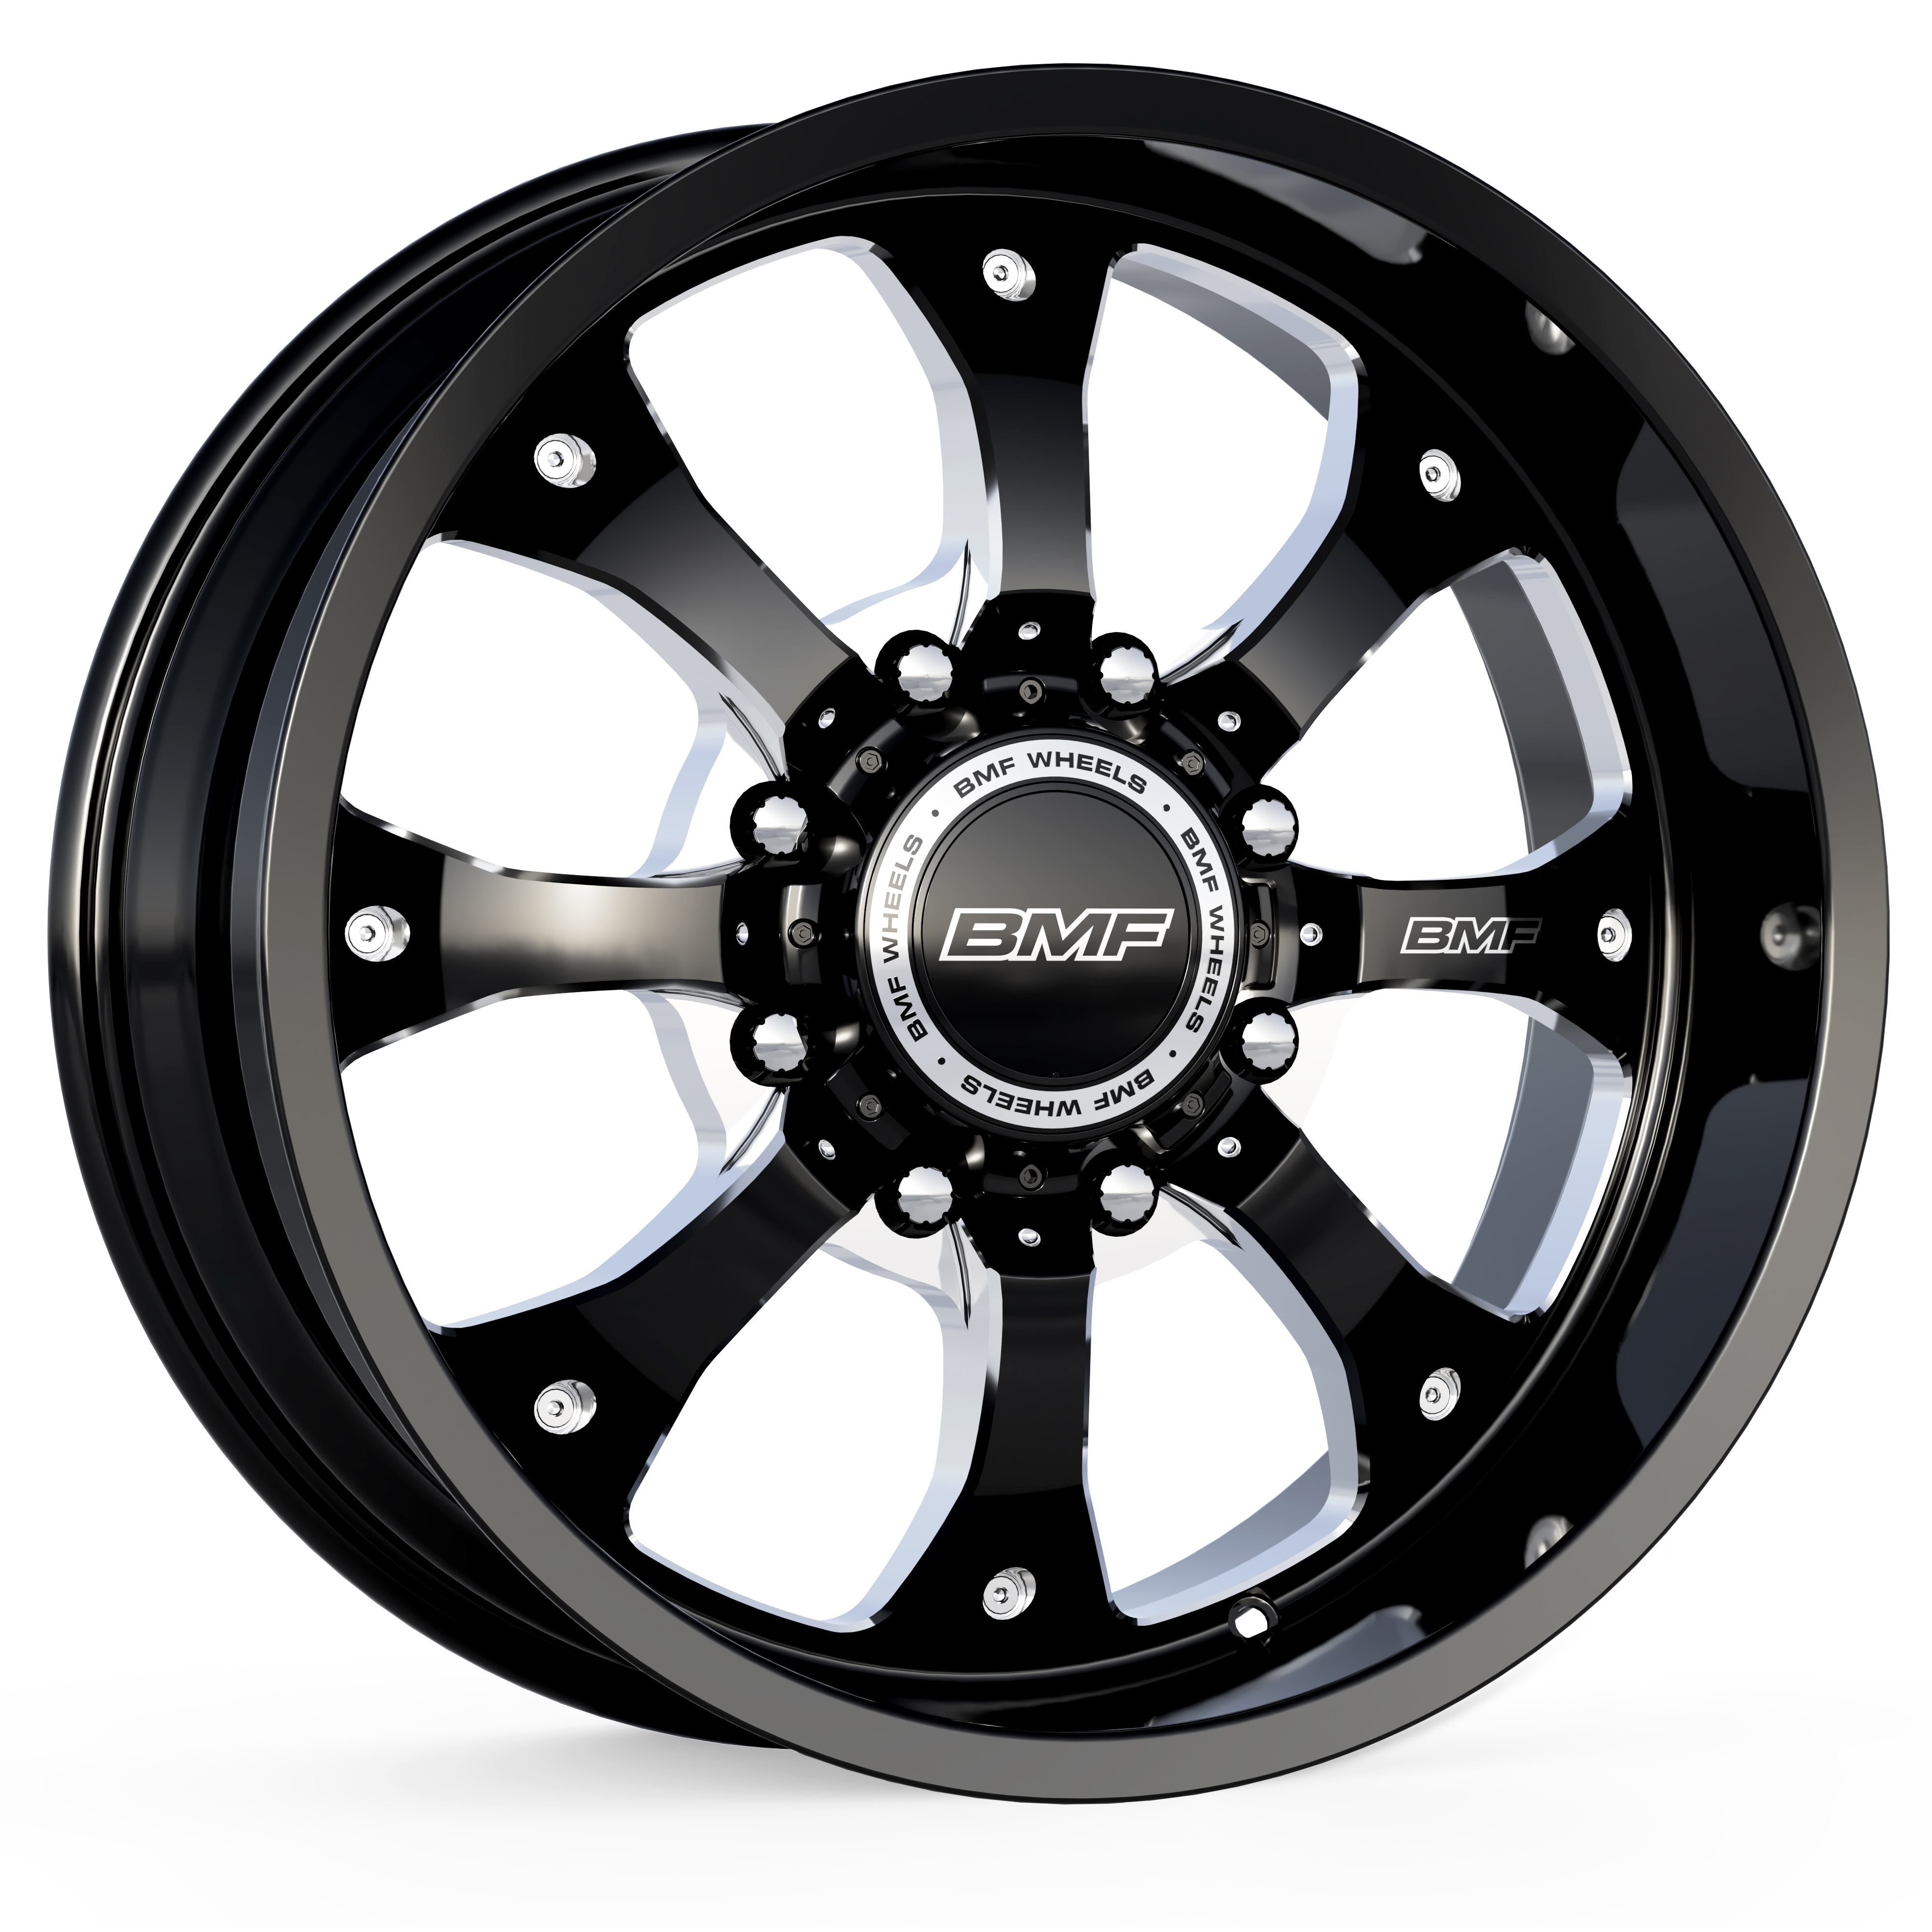 8 Lug Wheel Accessories